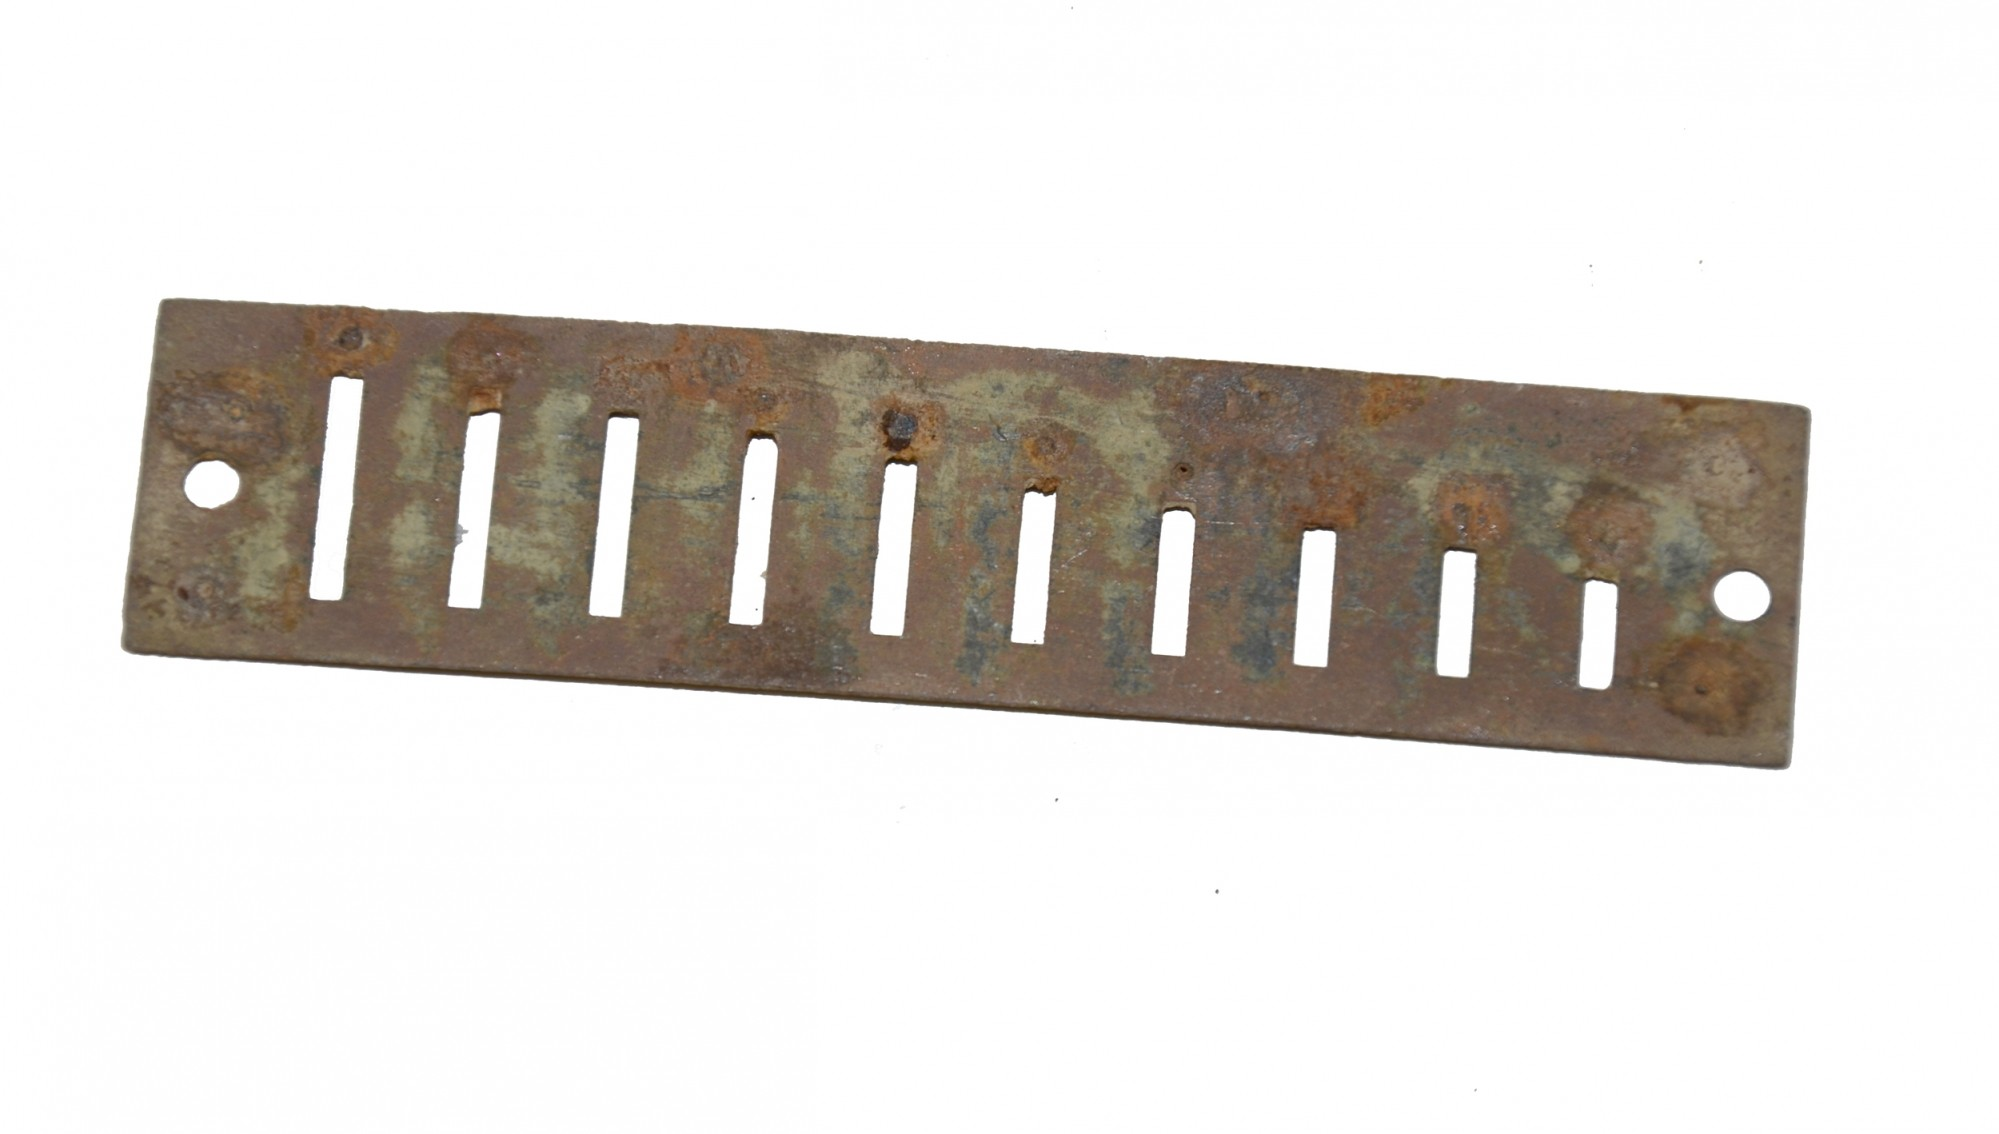 SECTION OF A HARMONICA RECOVERED AT THE ROSE FARM, GETTYSBURG